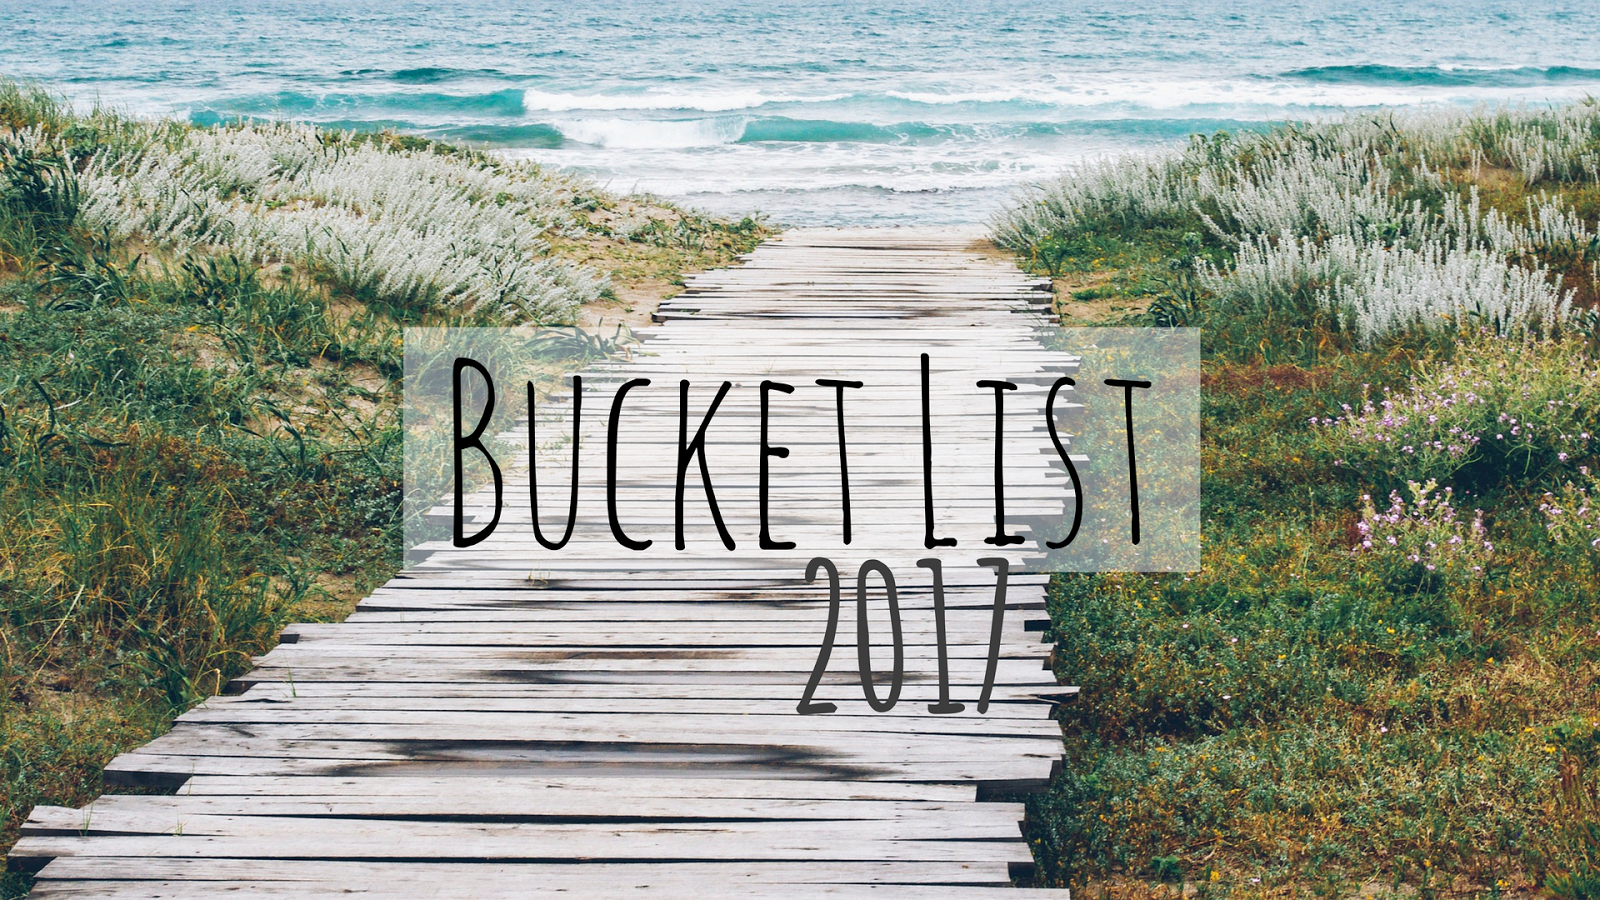 bucket list, inspiration, lifestyle, travel, 2017, new year, nye, holidays, book, fitness, bake